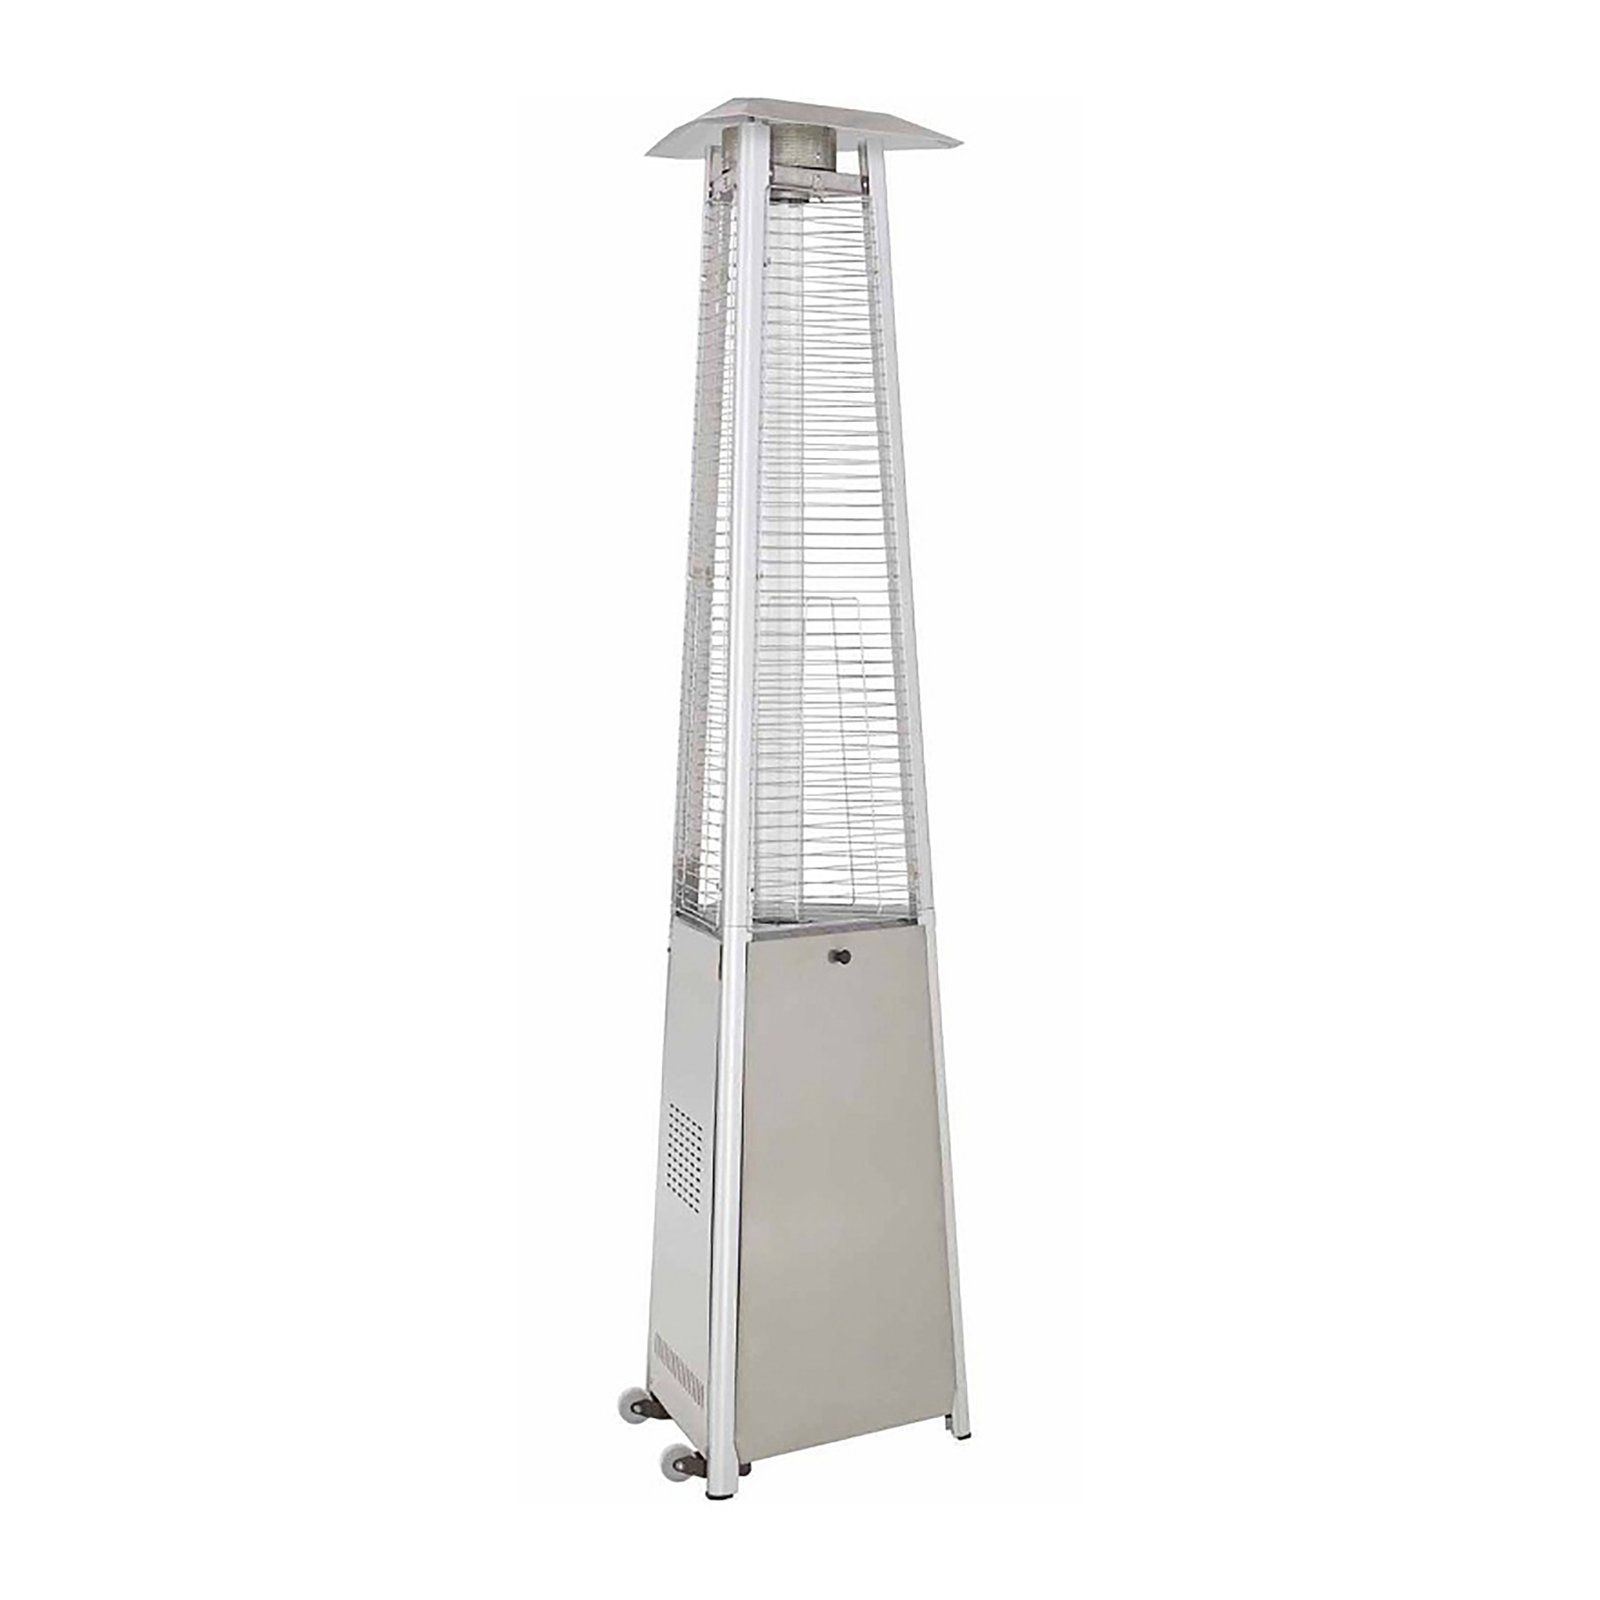 Commercial Stainless Steel Tornado Flame Patio Heater Patio Heater Heater Stainless Steel